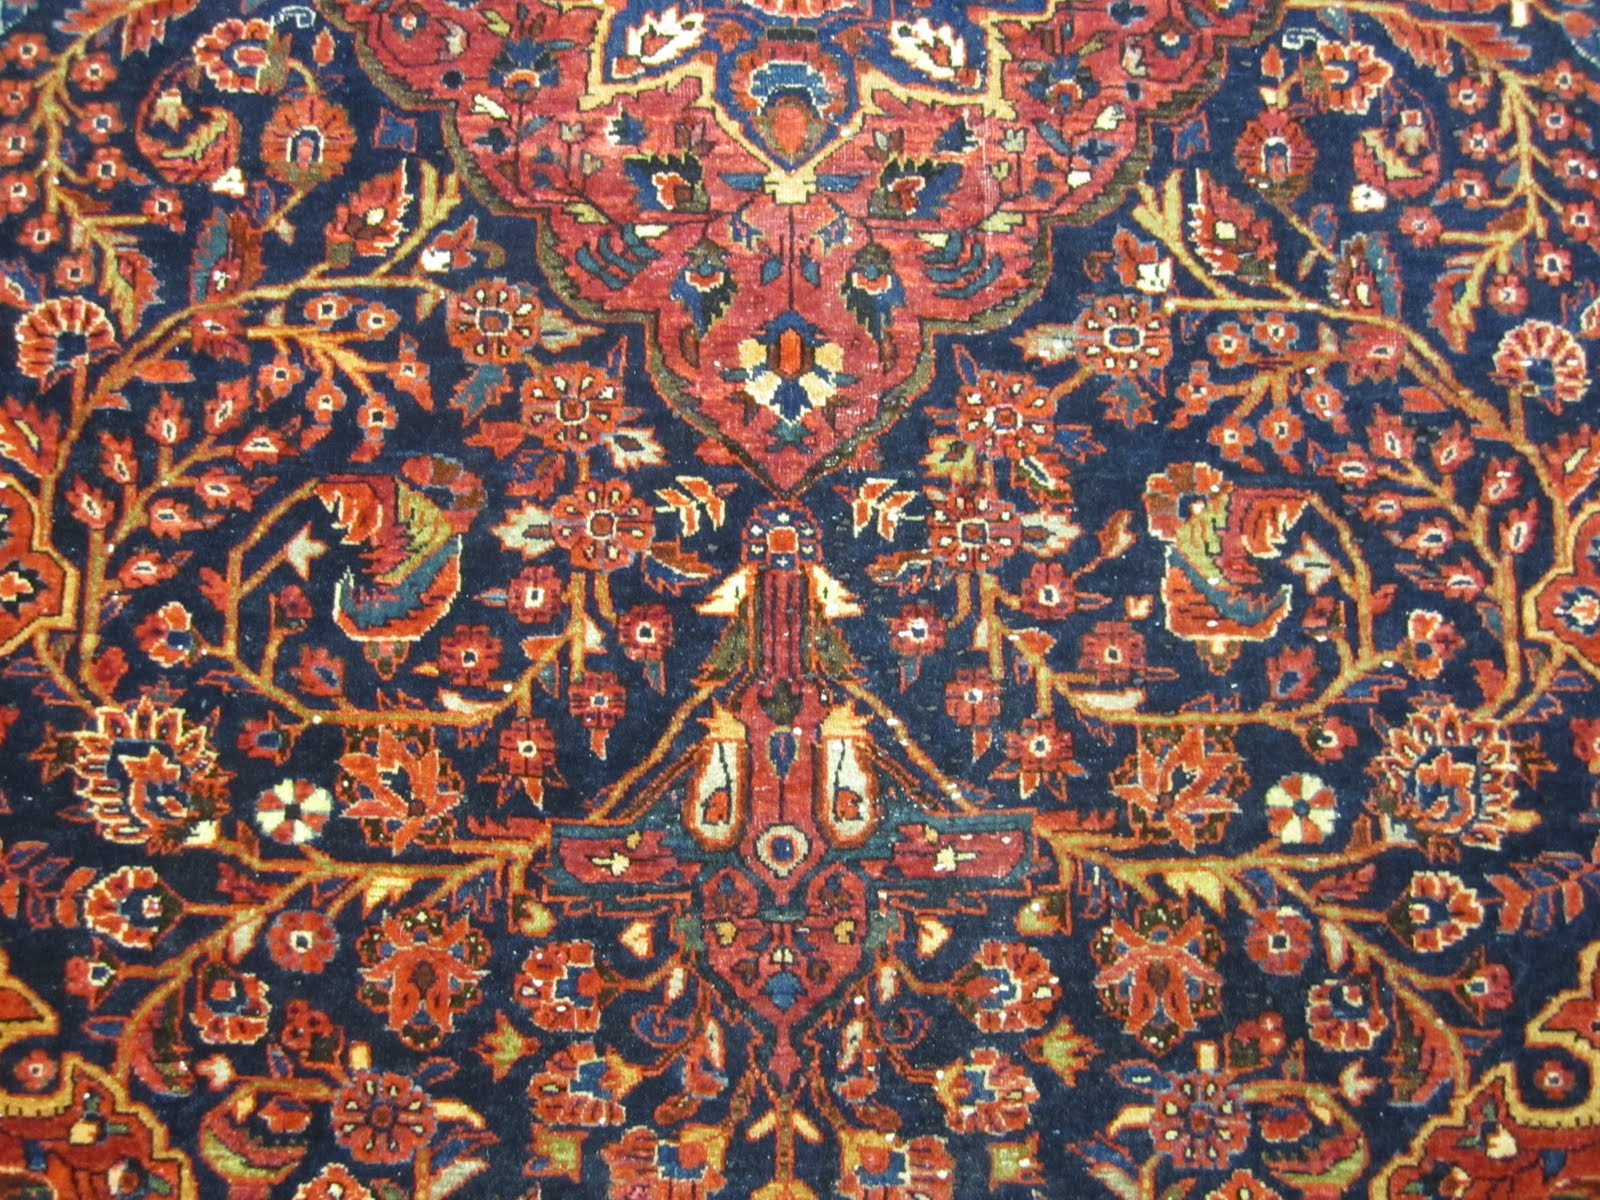 For More Than 20 Years,Design Rug Gallery San Clemente Has Been A Premier  Oriental And Persian Rug Distributor In San Clemente. We Sell, Repair And  Restore ...